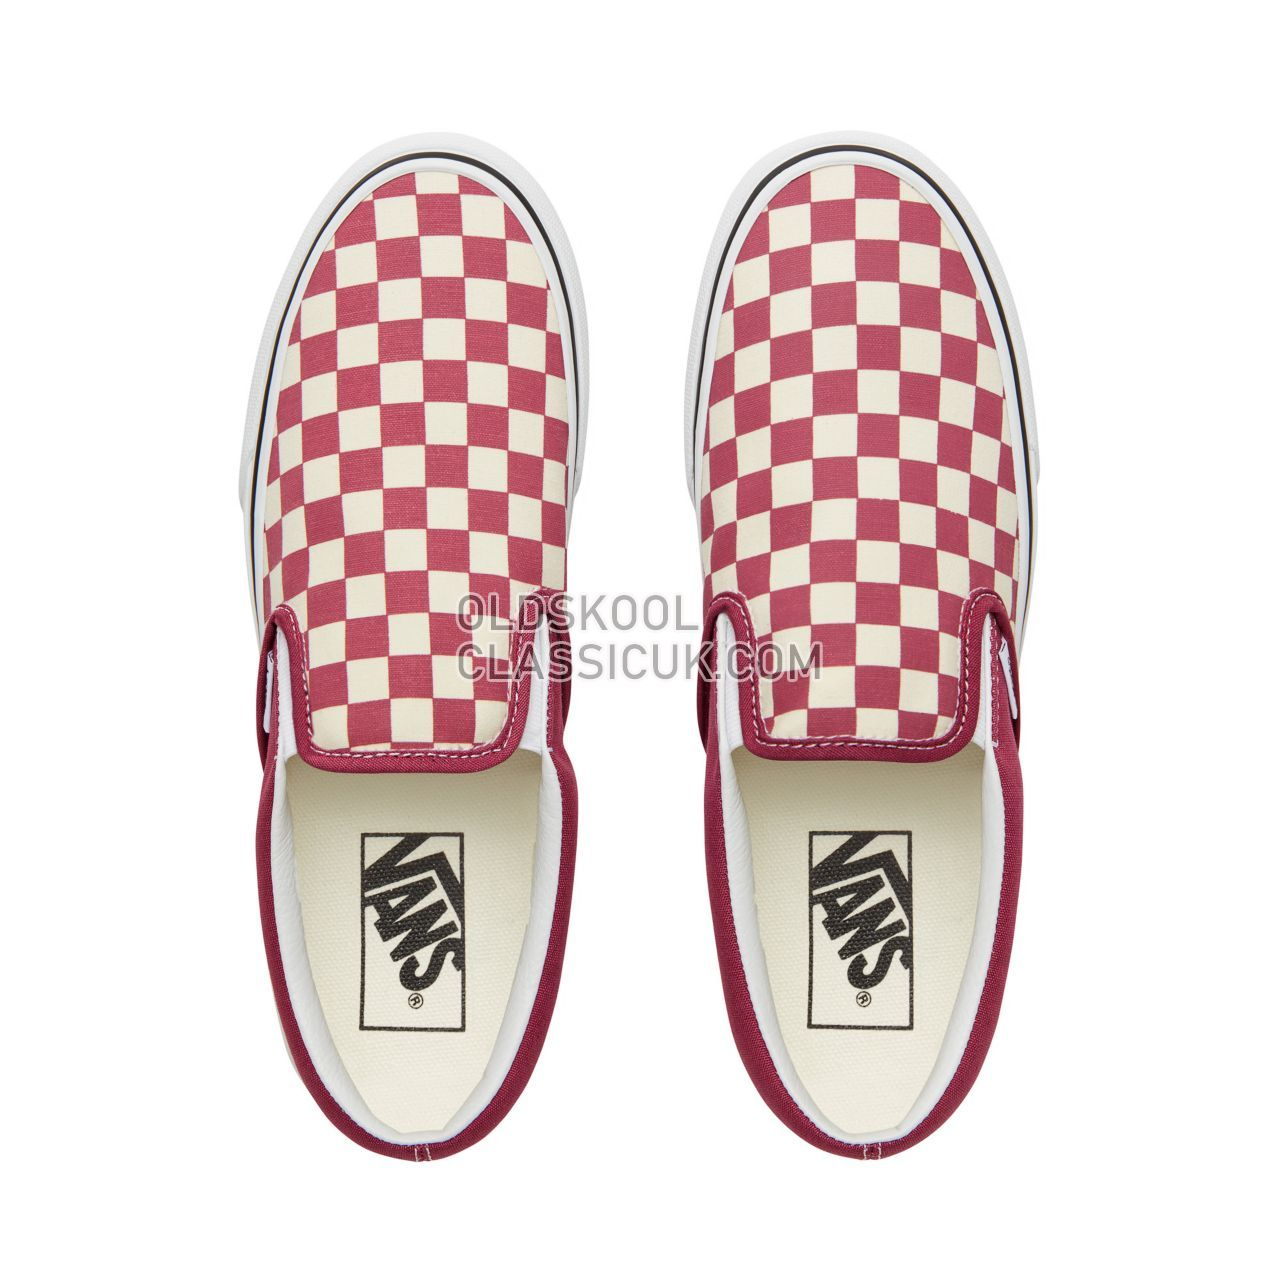 9361703eeeb Vans Color Theory Checkerboard Classic Slip-On Sneakers (Unisex) Mens ( Checkerboard) Dry Rose White VA38F7U7A Shoes - £54